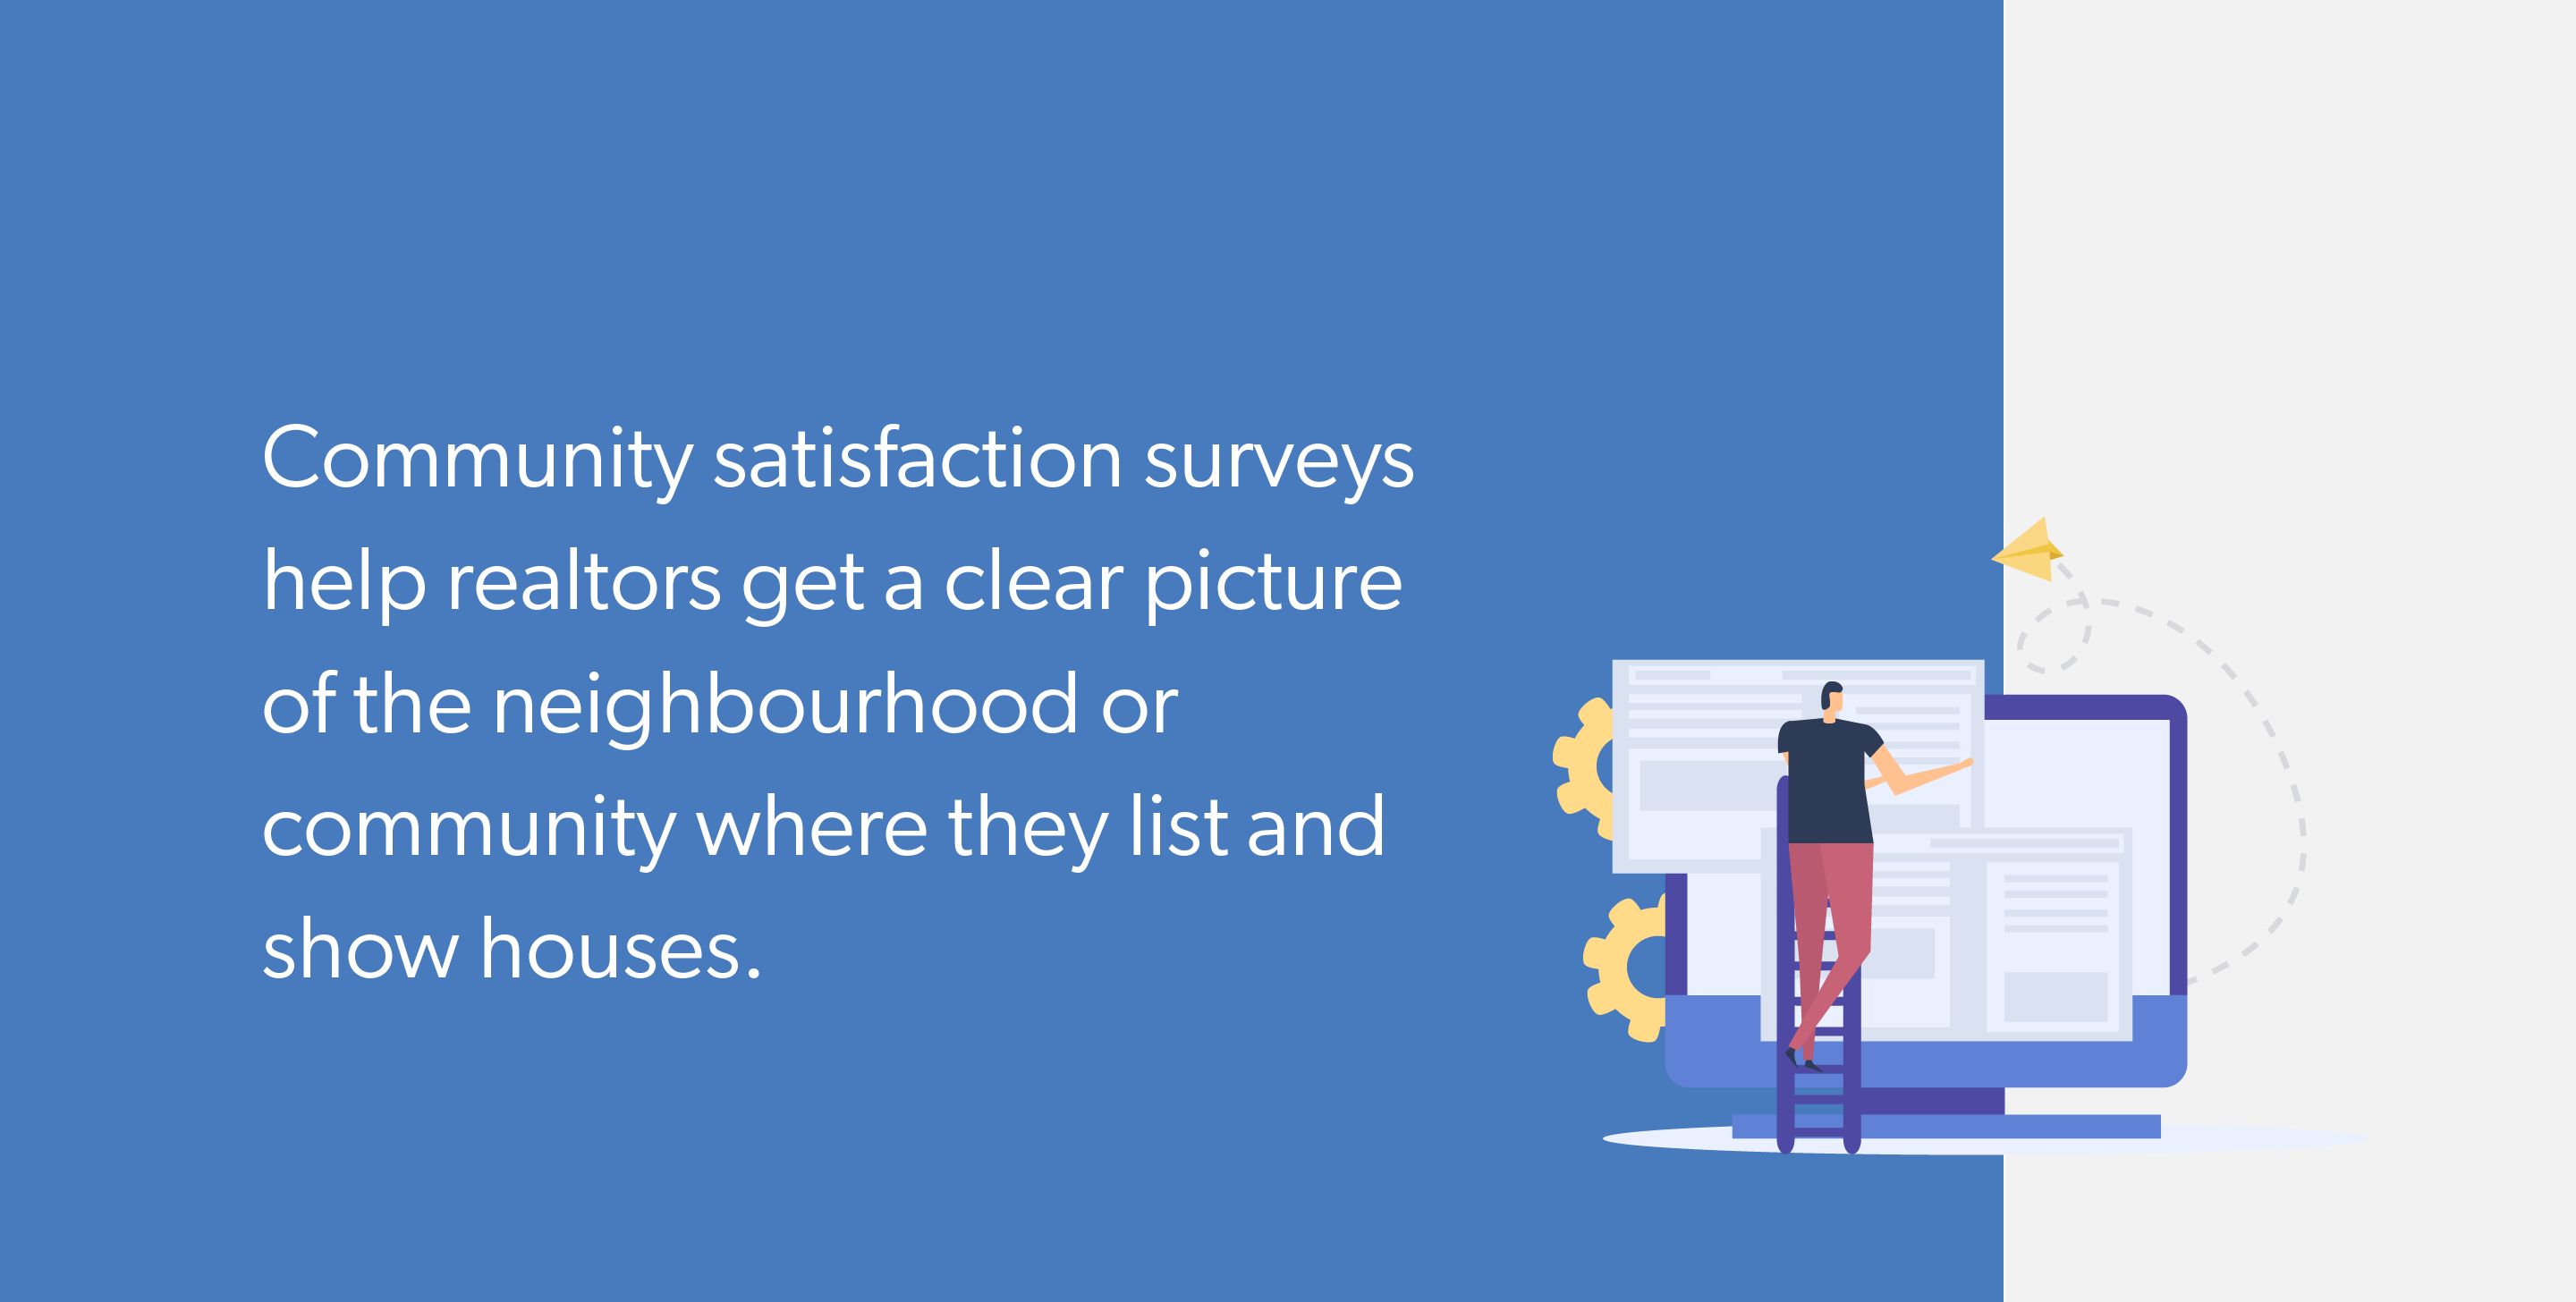 Community satisfaction surveys help realtors get a clear picture of the neighbourhood or community where they list and show houses.